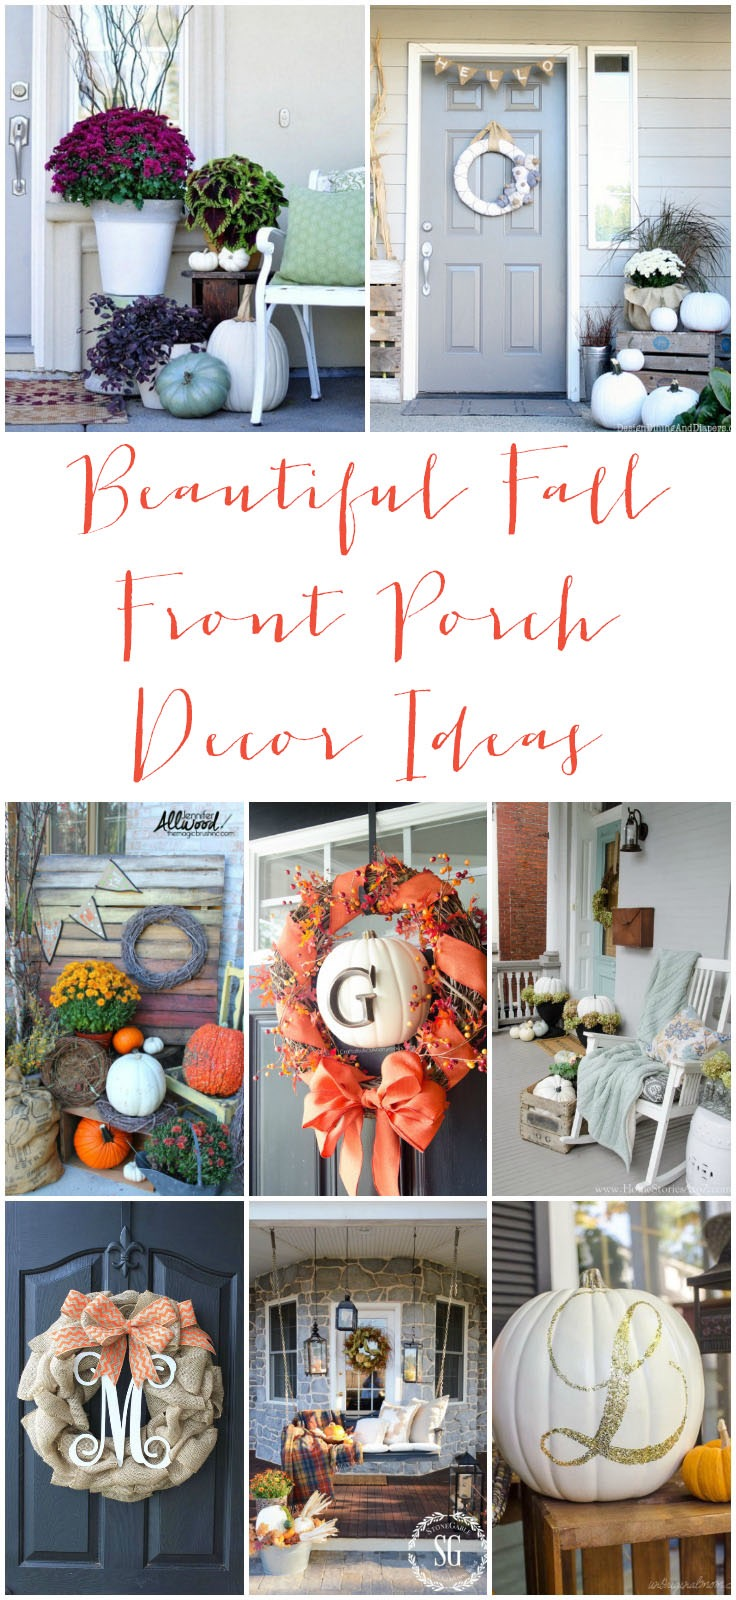 cute fall porch ideas, inexpensive fall decorating ideas, cheap fall decorations for outside, front porch decorating ideas on a budget, small front porch decorating ideas, front porch decorating ideas pictures, front porch decorating ideas photos